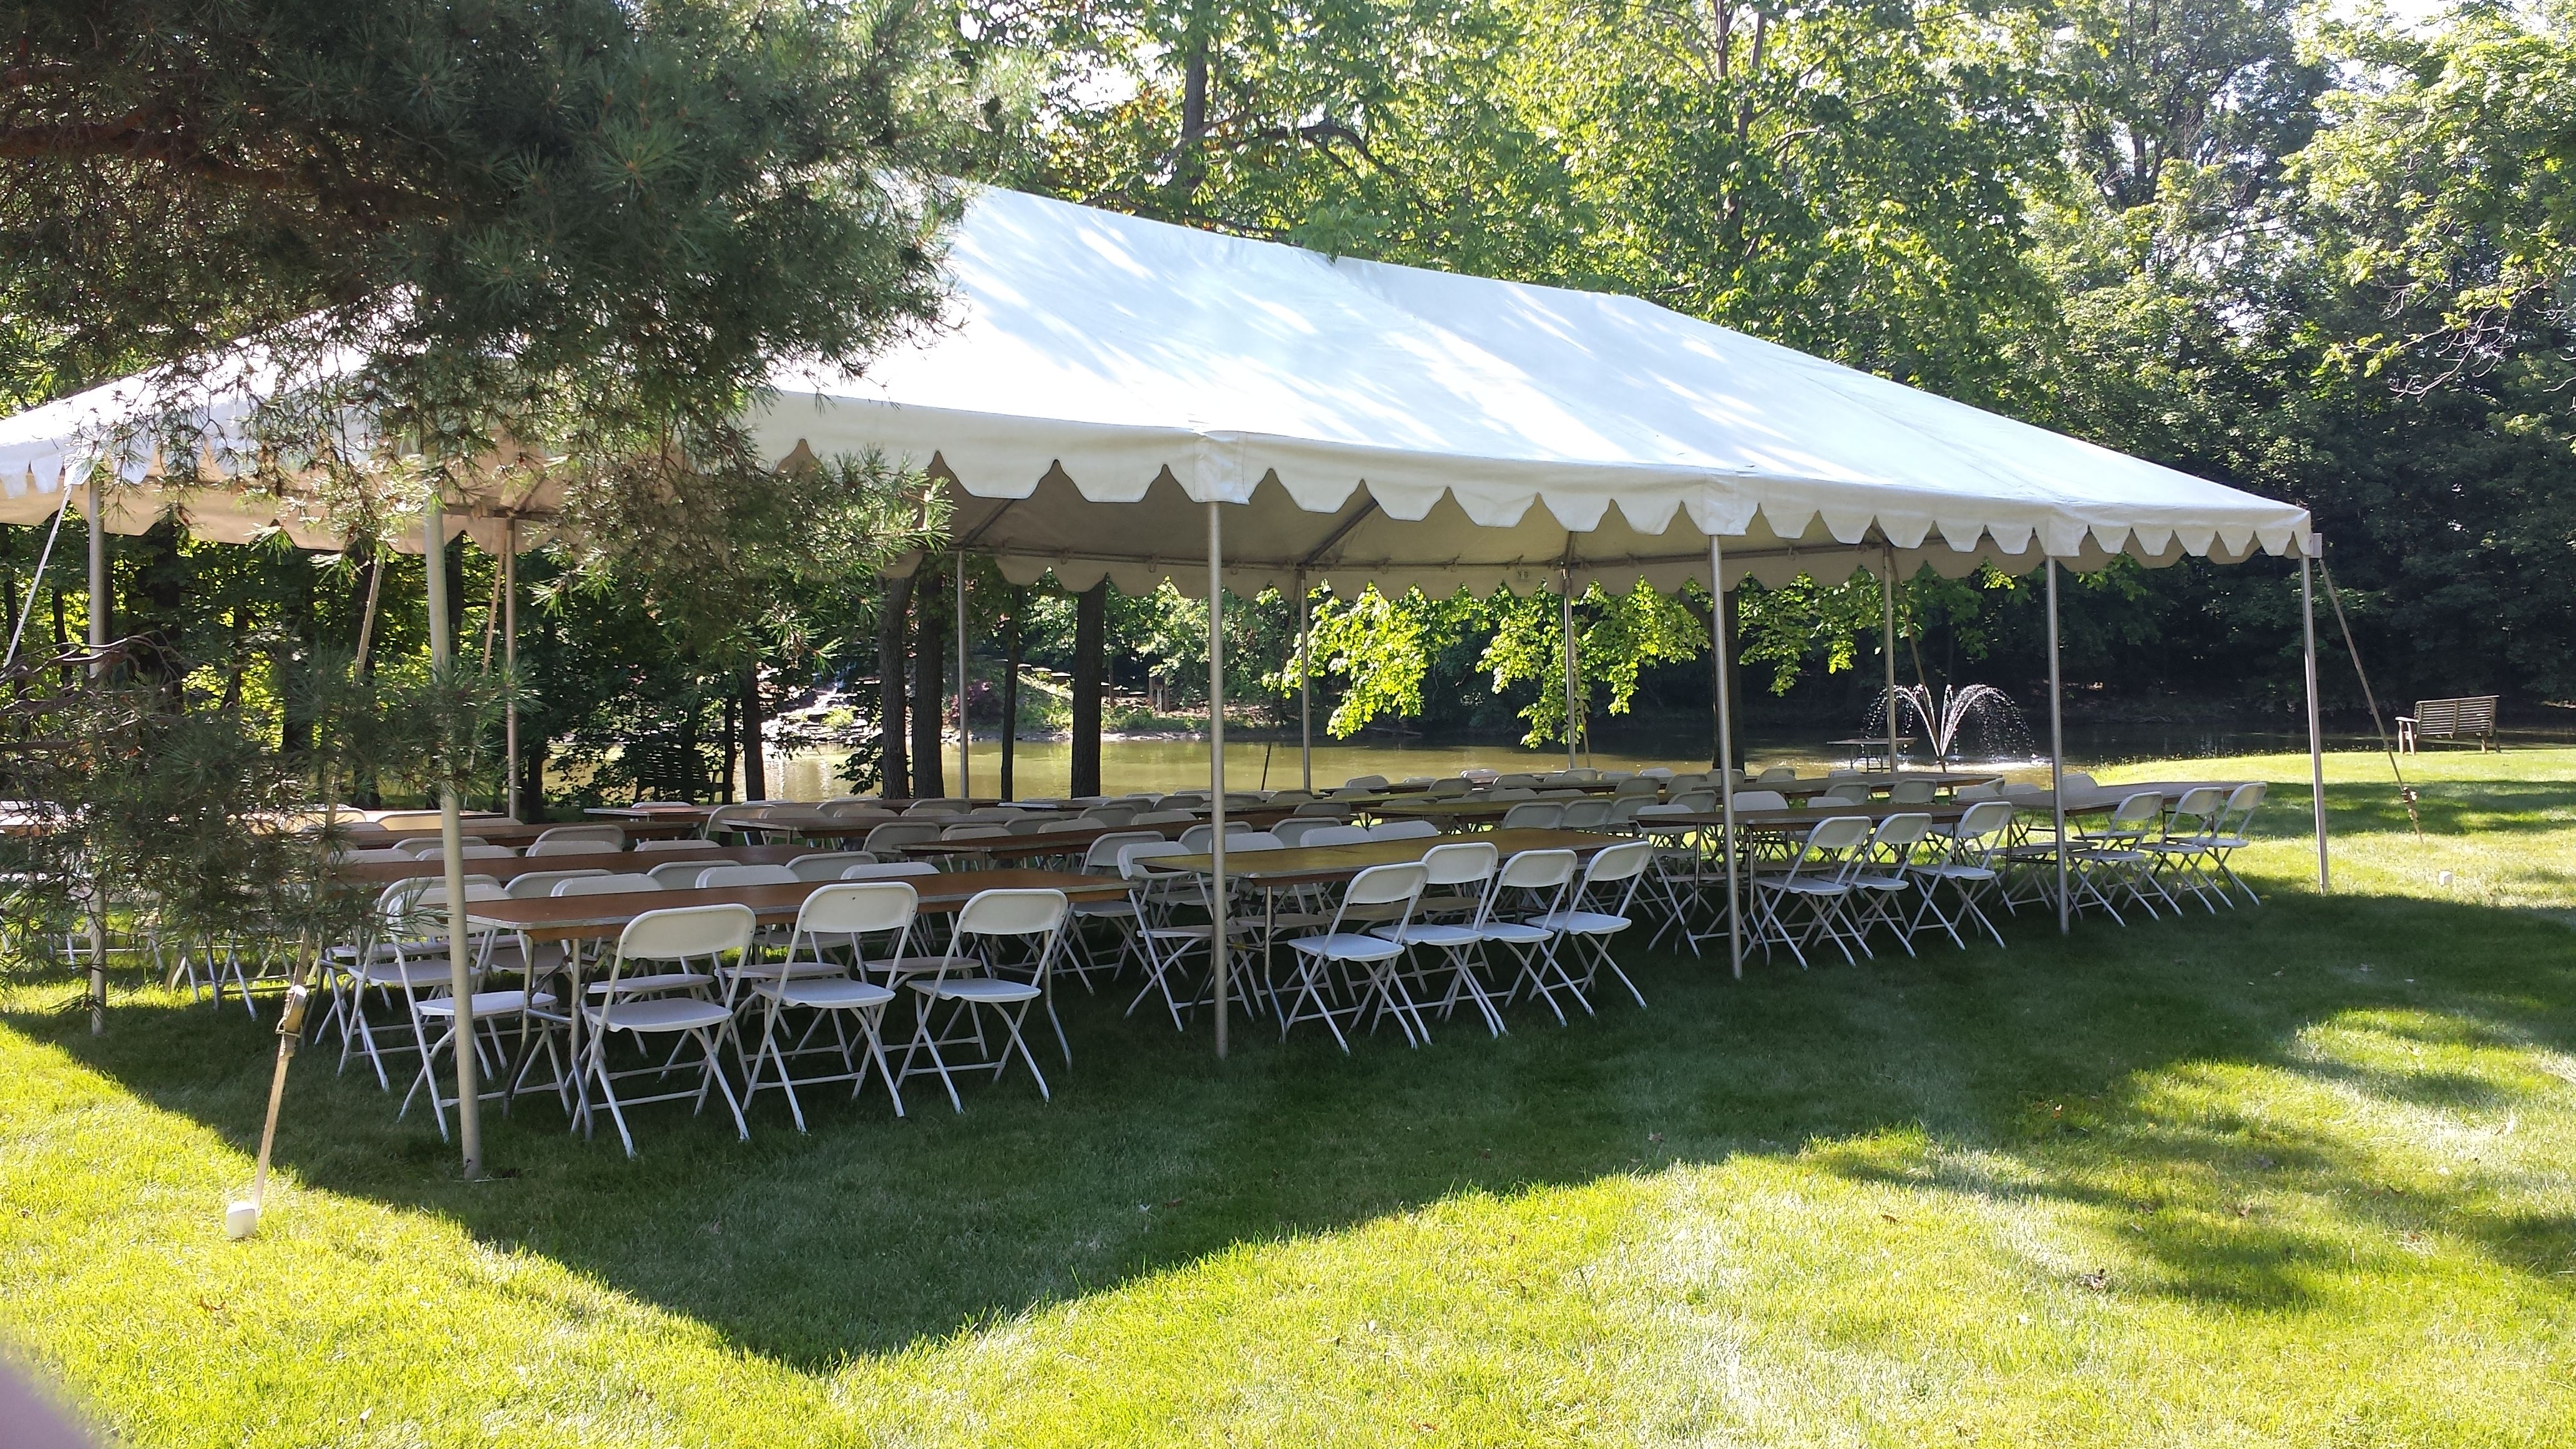 20 x 40 & Traditional White Frame Tents - Metro Cuisine - Columbus OH